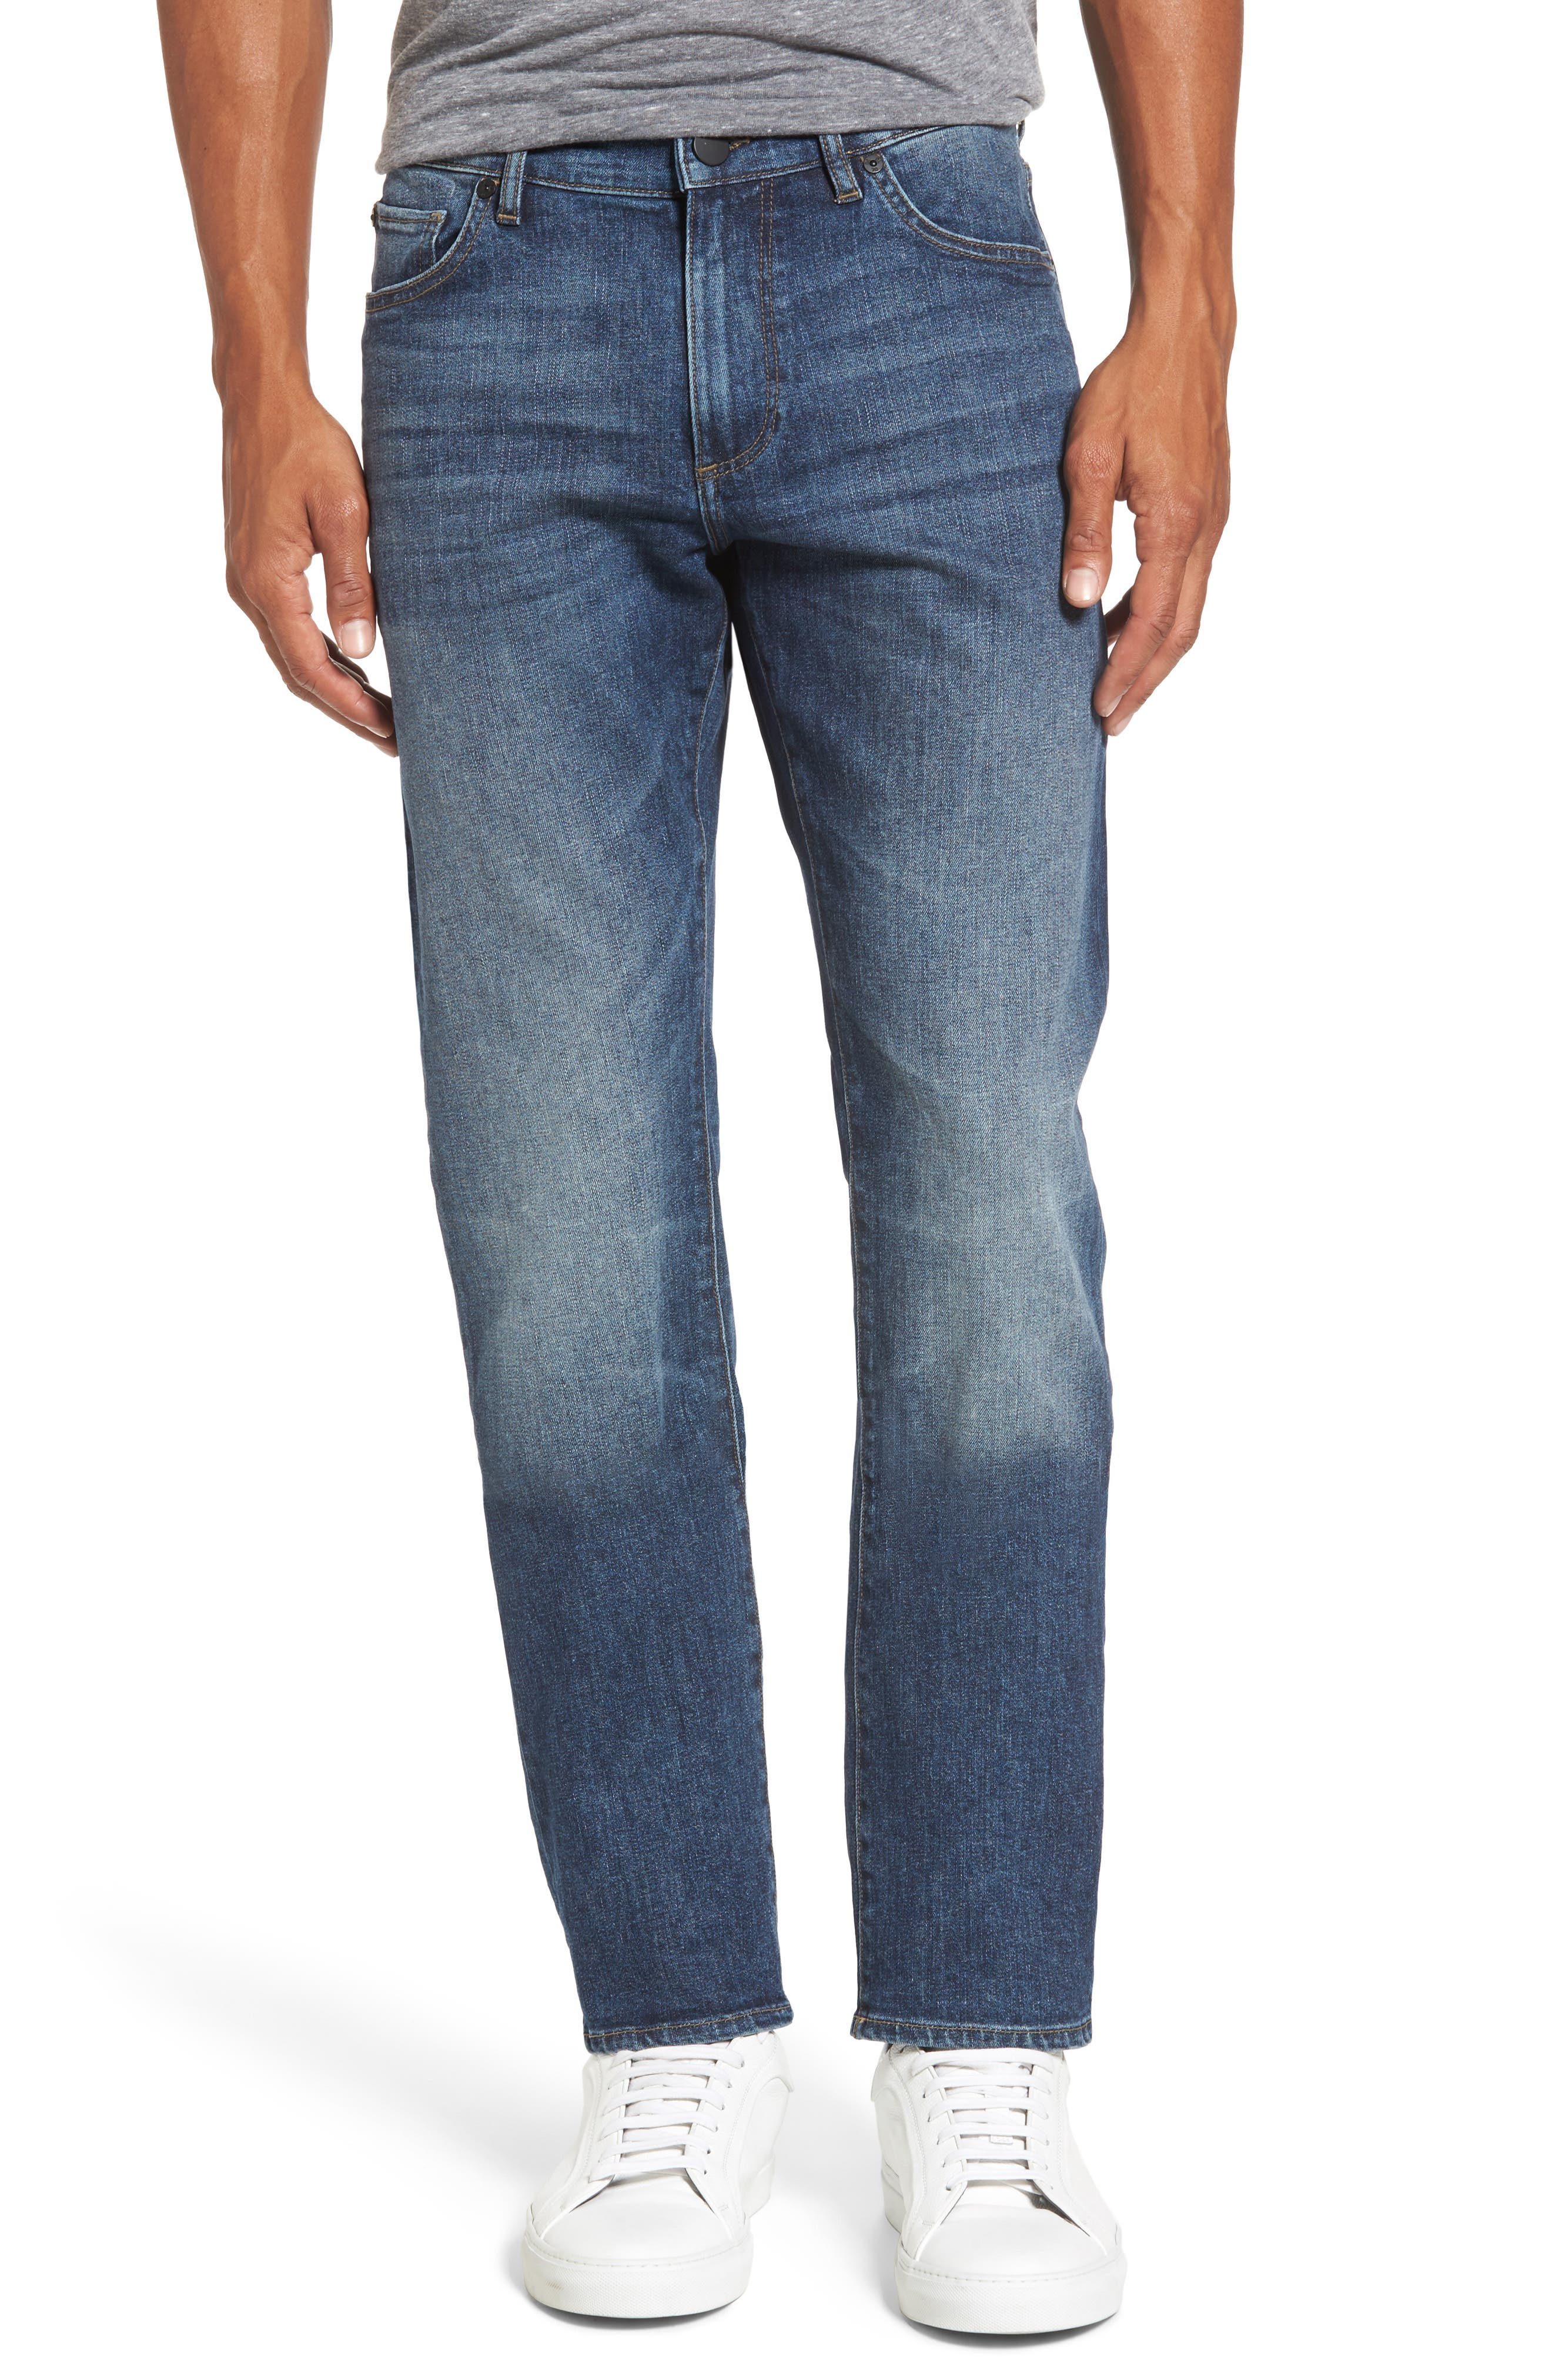 Russell Slim Straight Leg Jeans,                         Main,                         color, 405